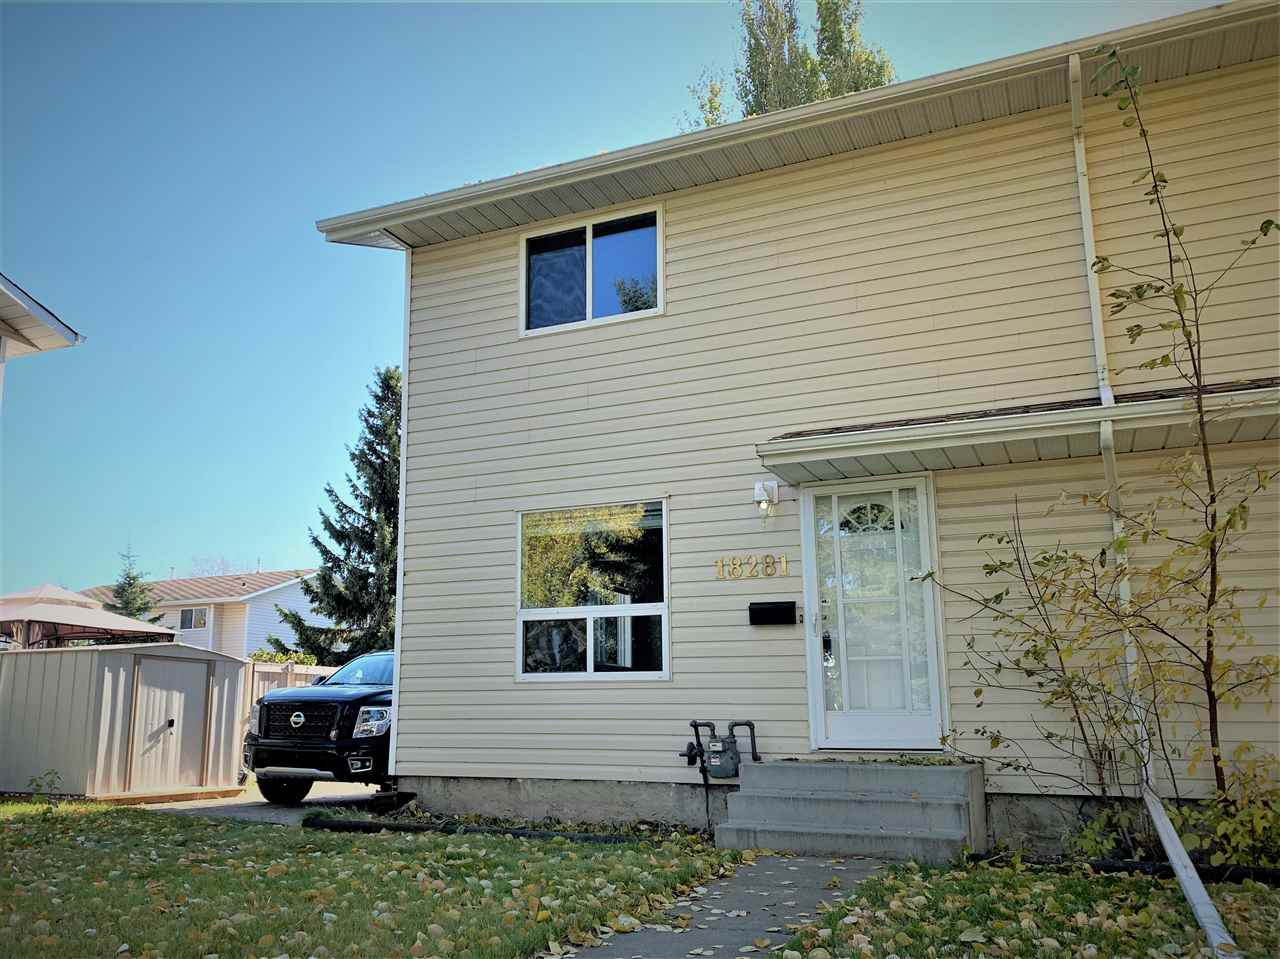 MLS® listing #E4165759 for sale located at 18281 74 Avenue